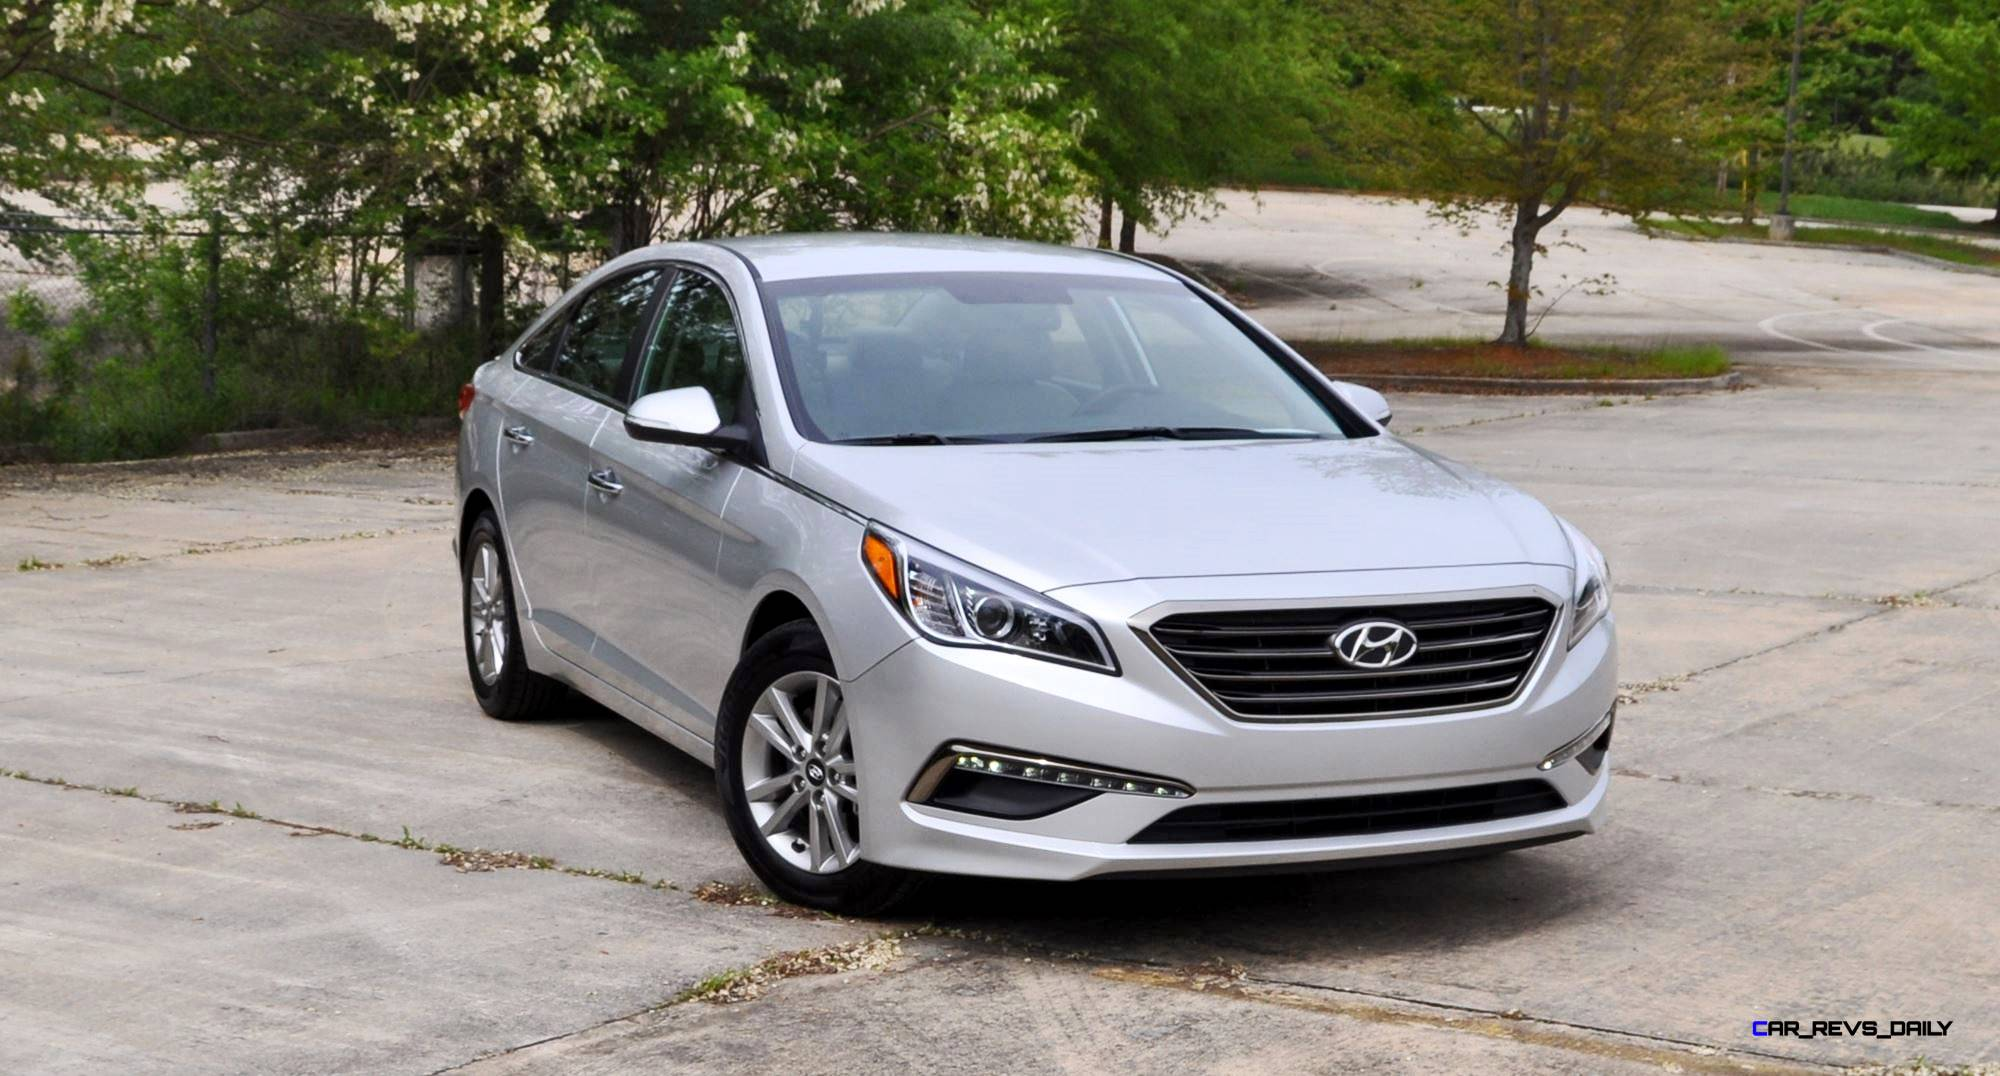 2015 hyundai sonata eco review 20. Black Bedroom Furniture Sets. Home Design Ideas